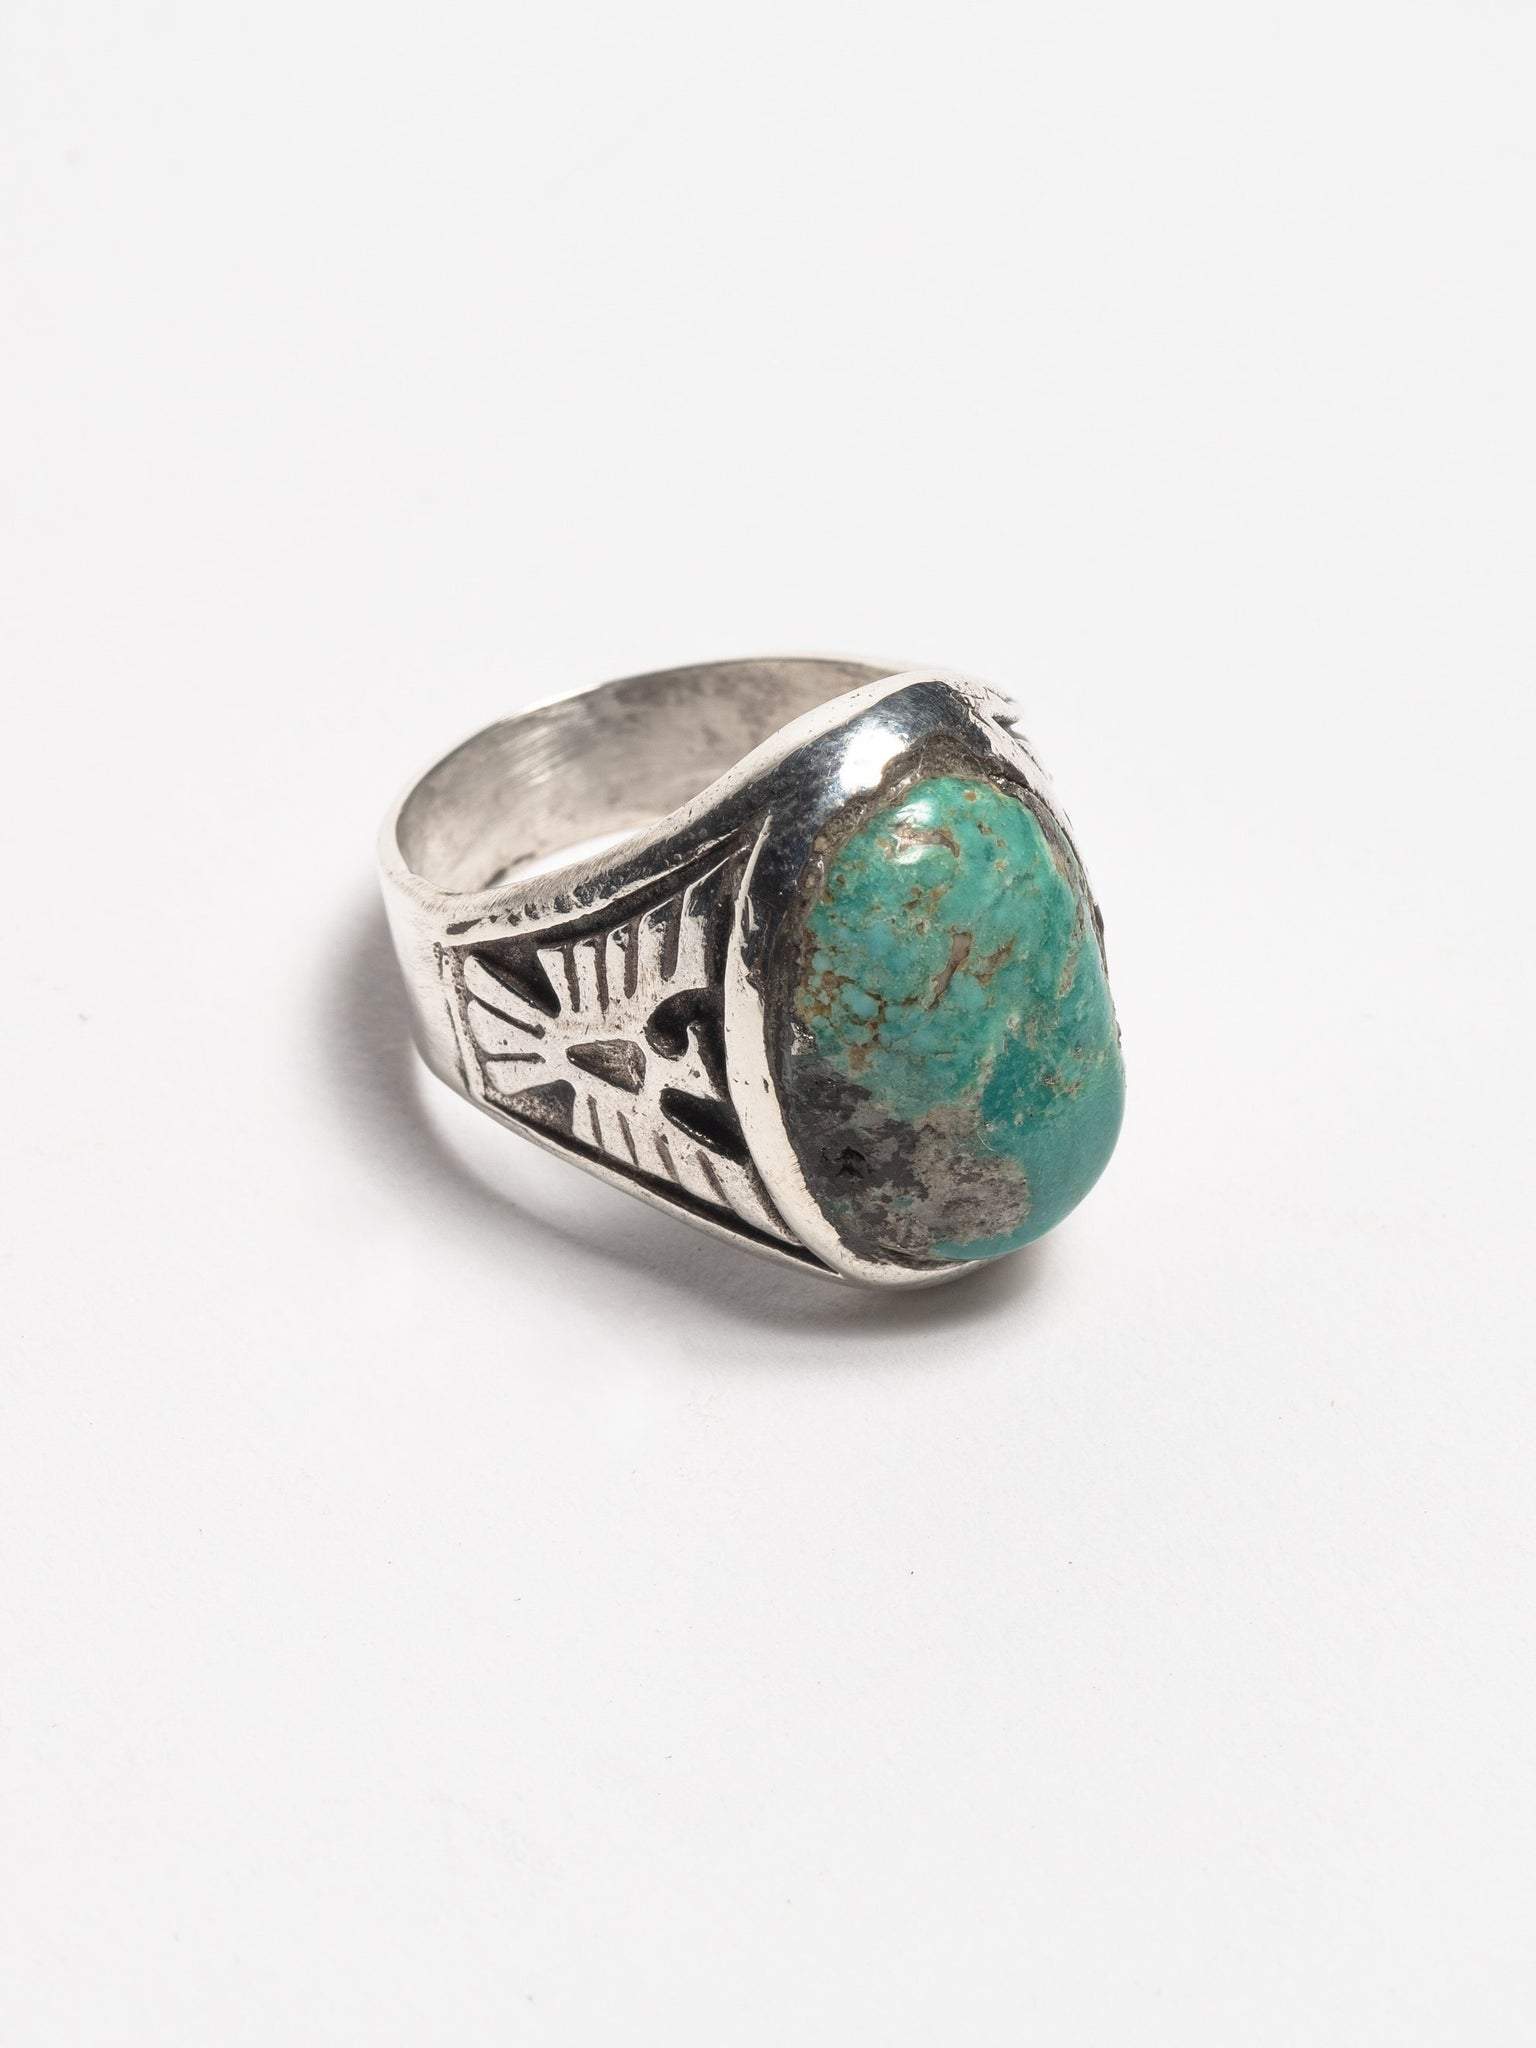 vintage-1950-s-navajo-sterling-silver-men-s-ring-with-inset-cast-thunderbirds-and-early-morenci-turquoise-stone